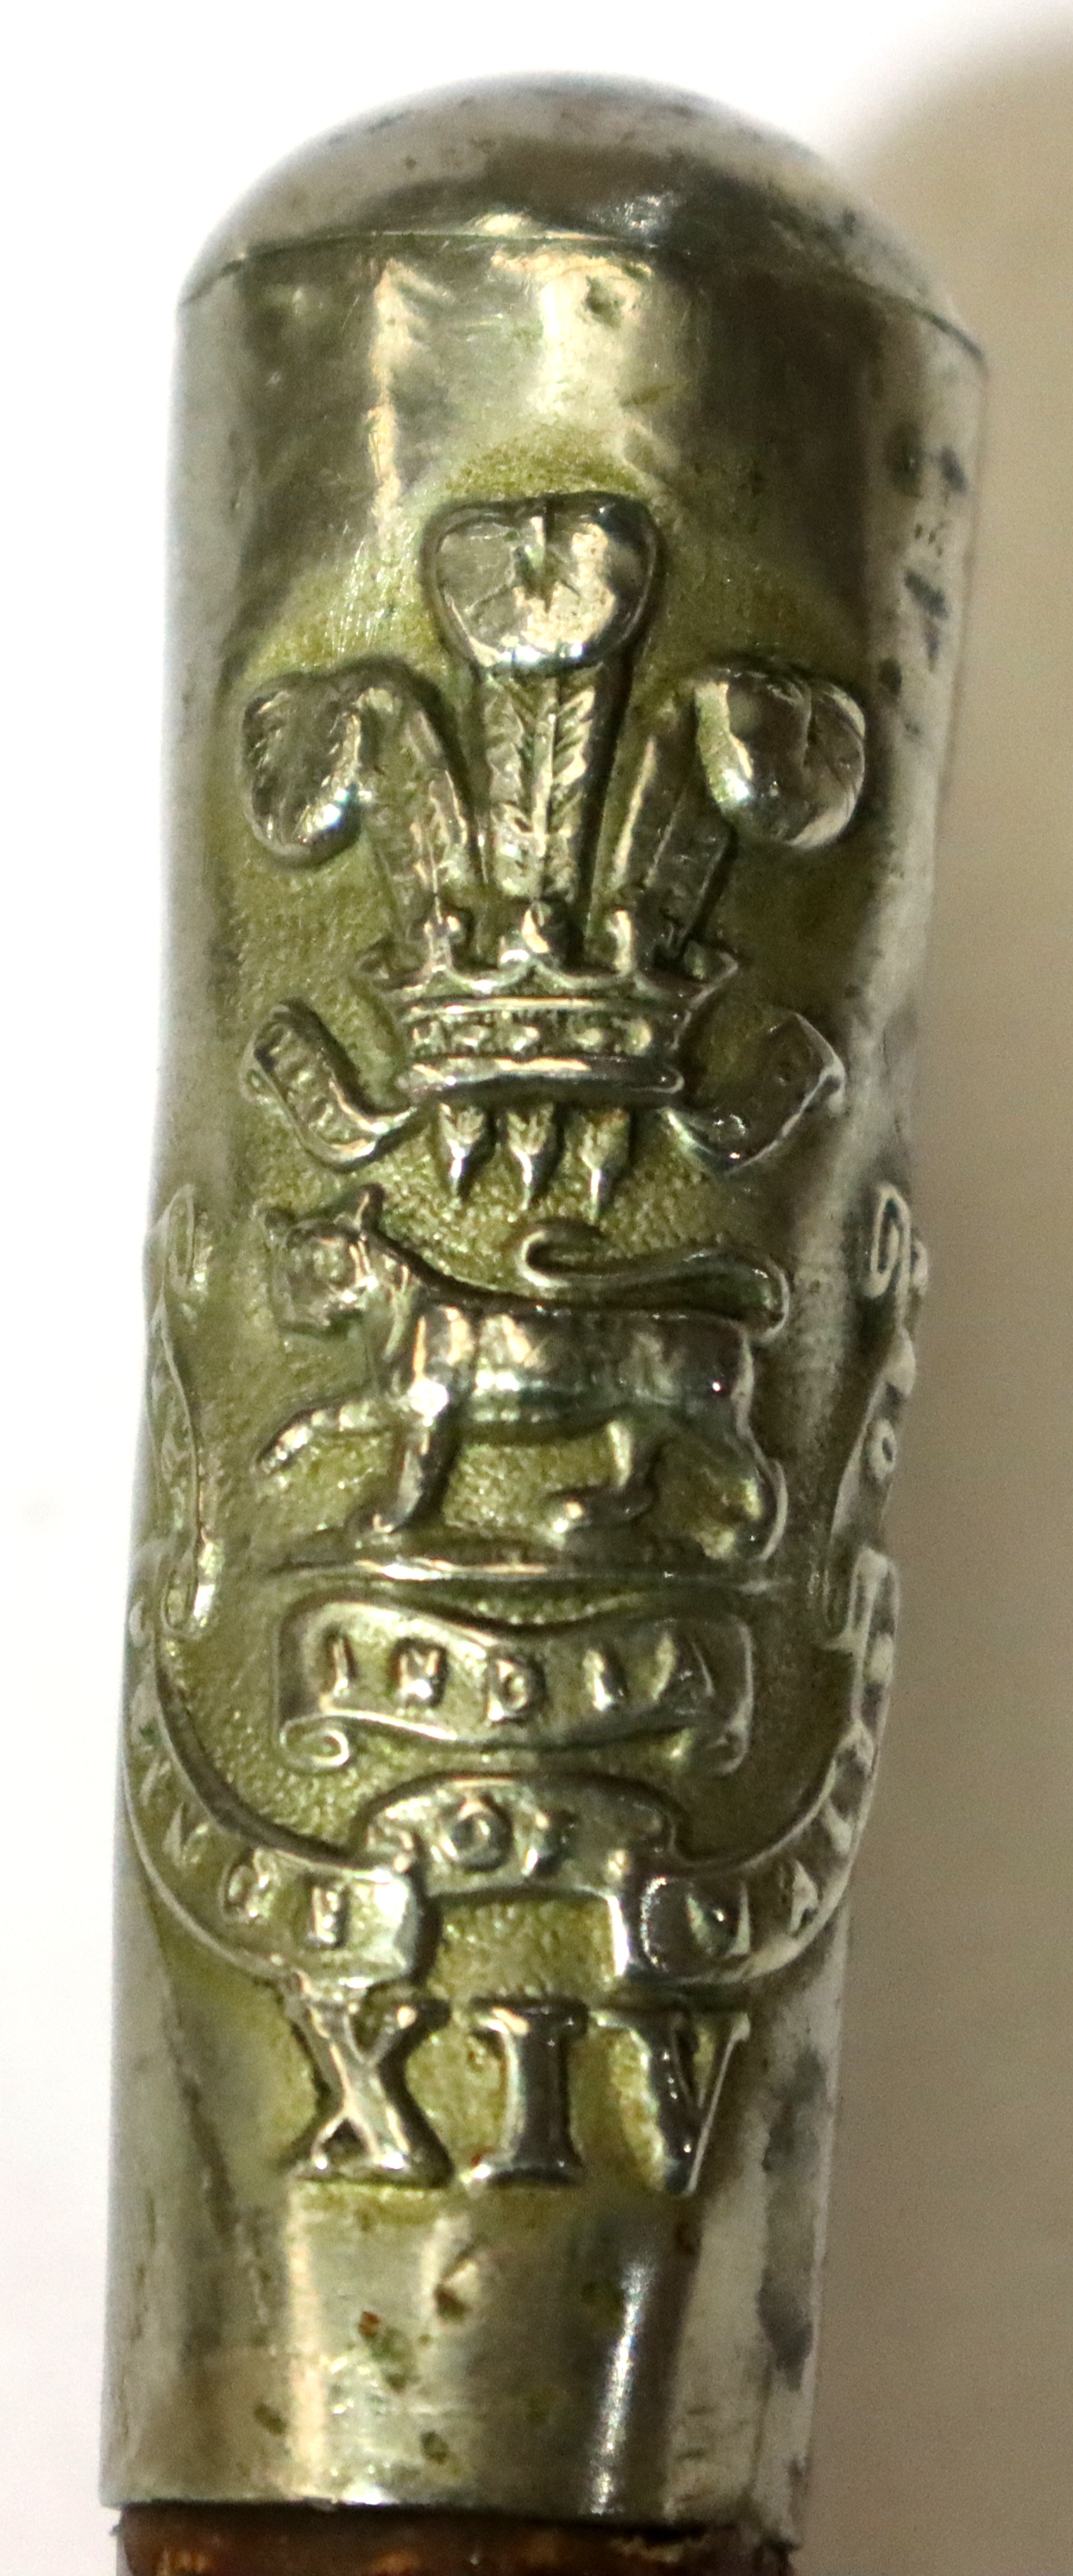 Victorian British NCOs swagger stick, 14th Foot (later West Yorkshire Regiment) dates to 1878-